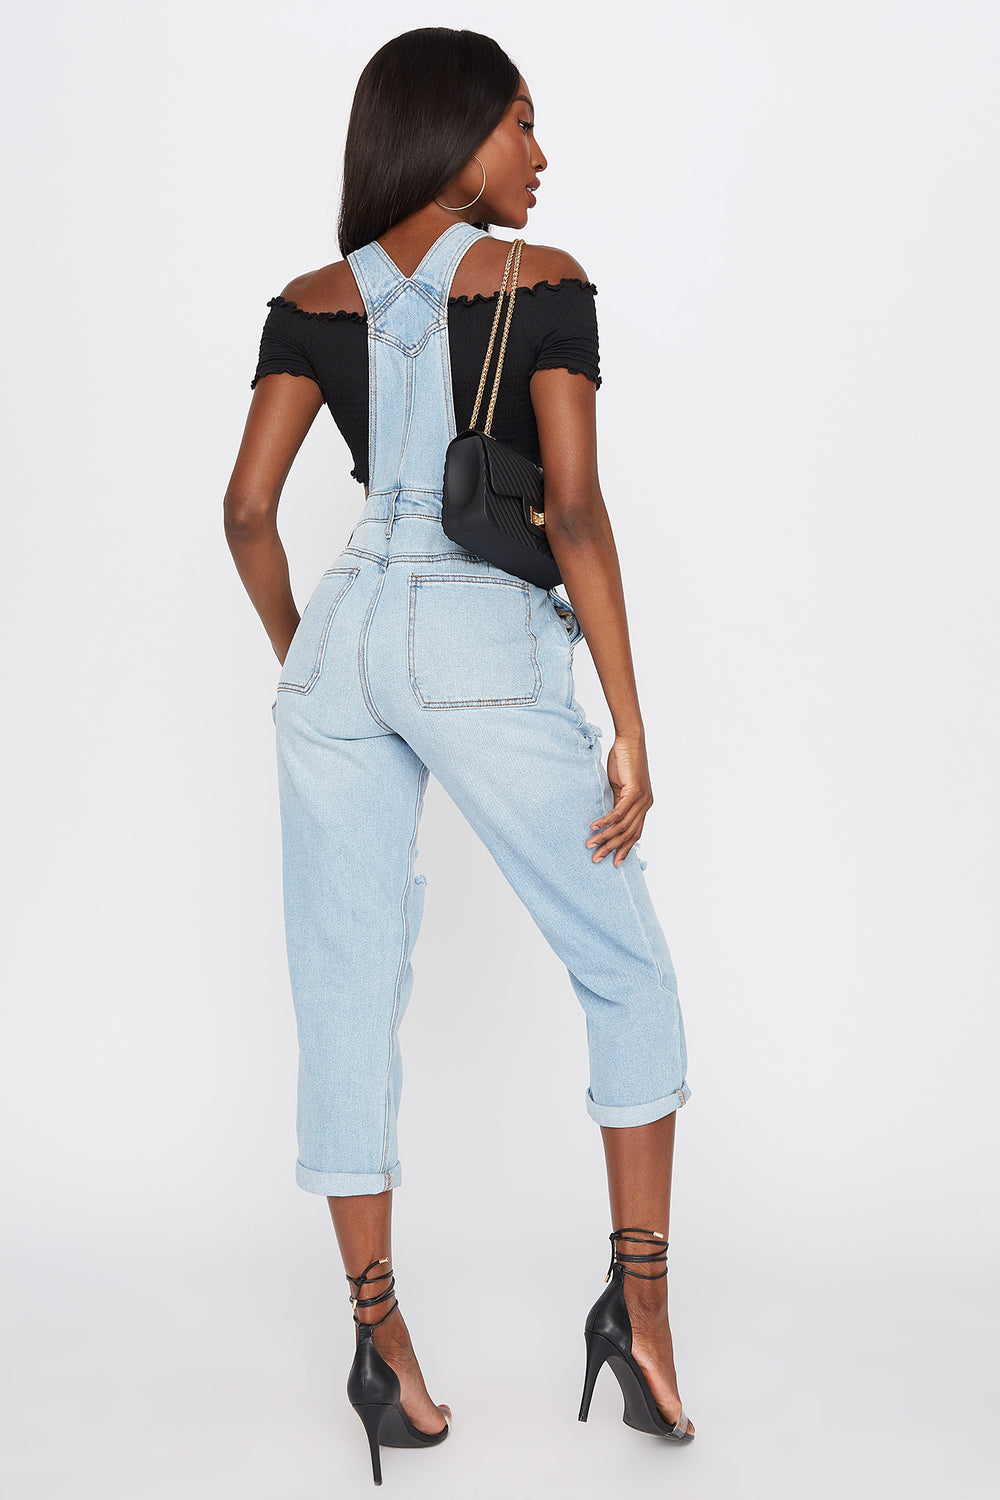 Refuge Light Wash Distressed Cuffed Denim Overall Sky Blue